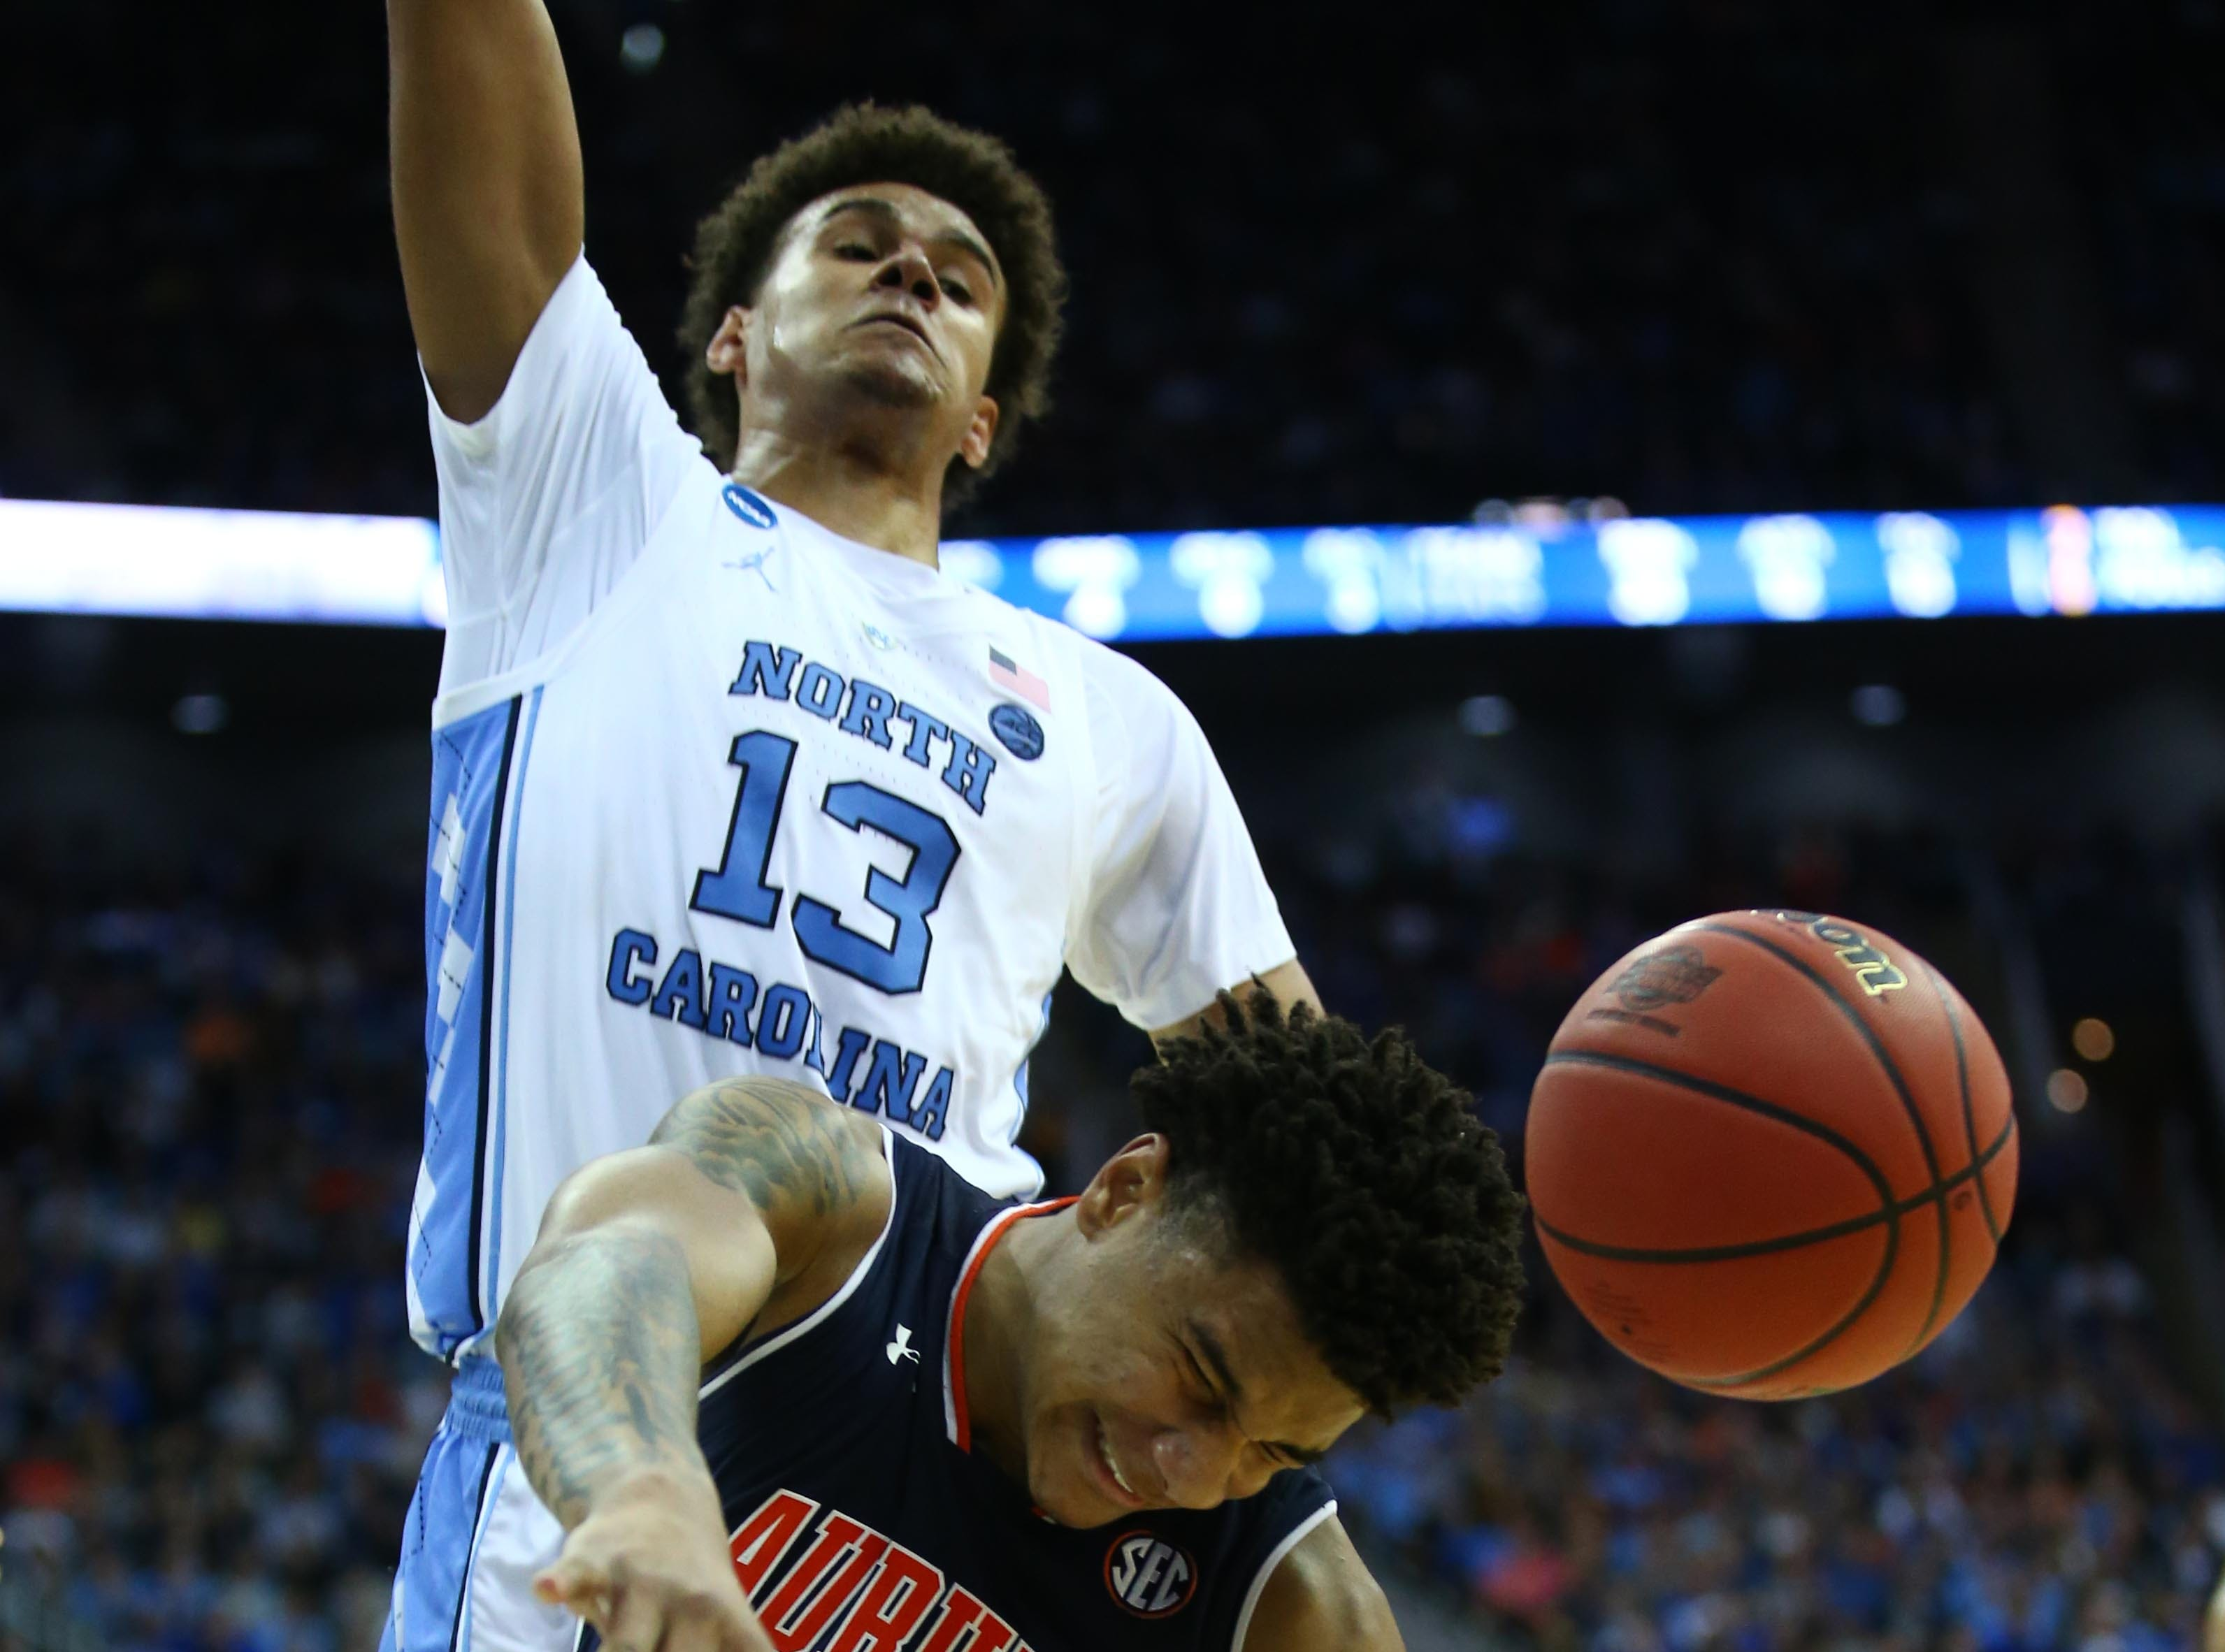 Mar 29, 2019; Kansas City, MO, United States; Auburn Tigers forward Chuma Okeke (5) suffers an apparent injury as he drives to the basket against North Carolina Tar Heels guard Cameron Johnson (13) during the second half in the semifinals of the midwest regional of the 2019 NCAA Tournament at Sprint Center. Mandatory Credit: Jay Biggerstaff-USA TODAY Sports